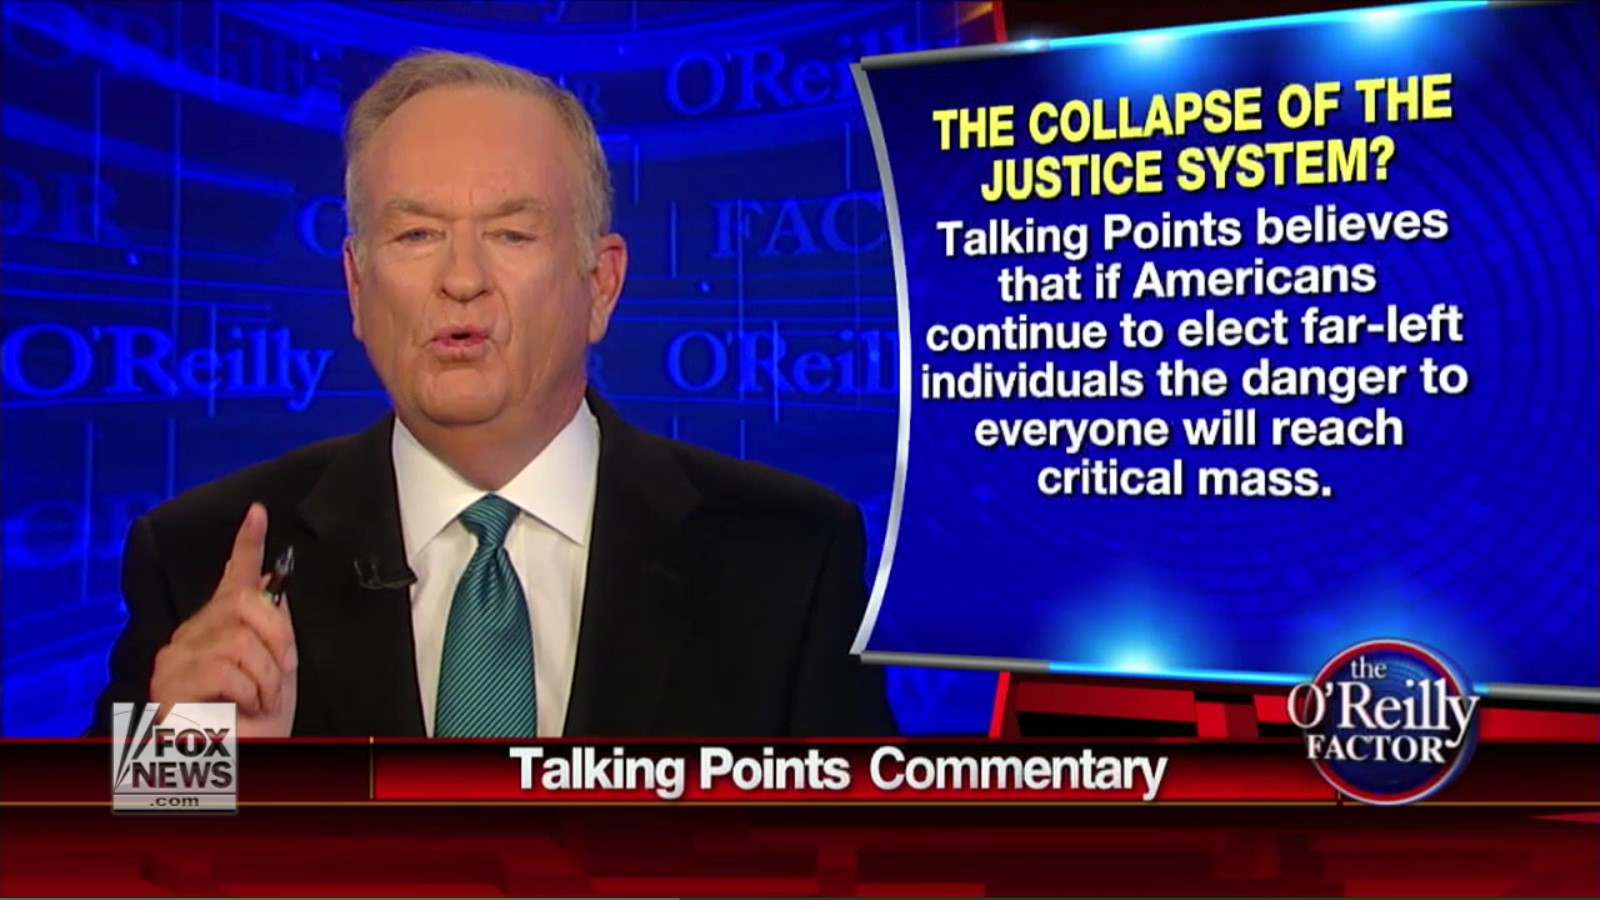 Fox News' Bill O'Reilly: Voting For Liberals Will Be The Death Of Us All!